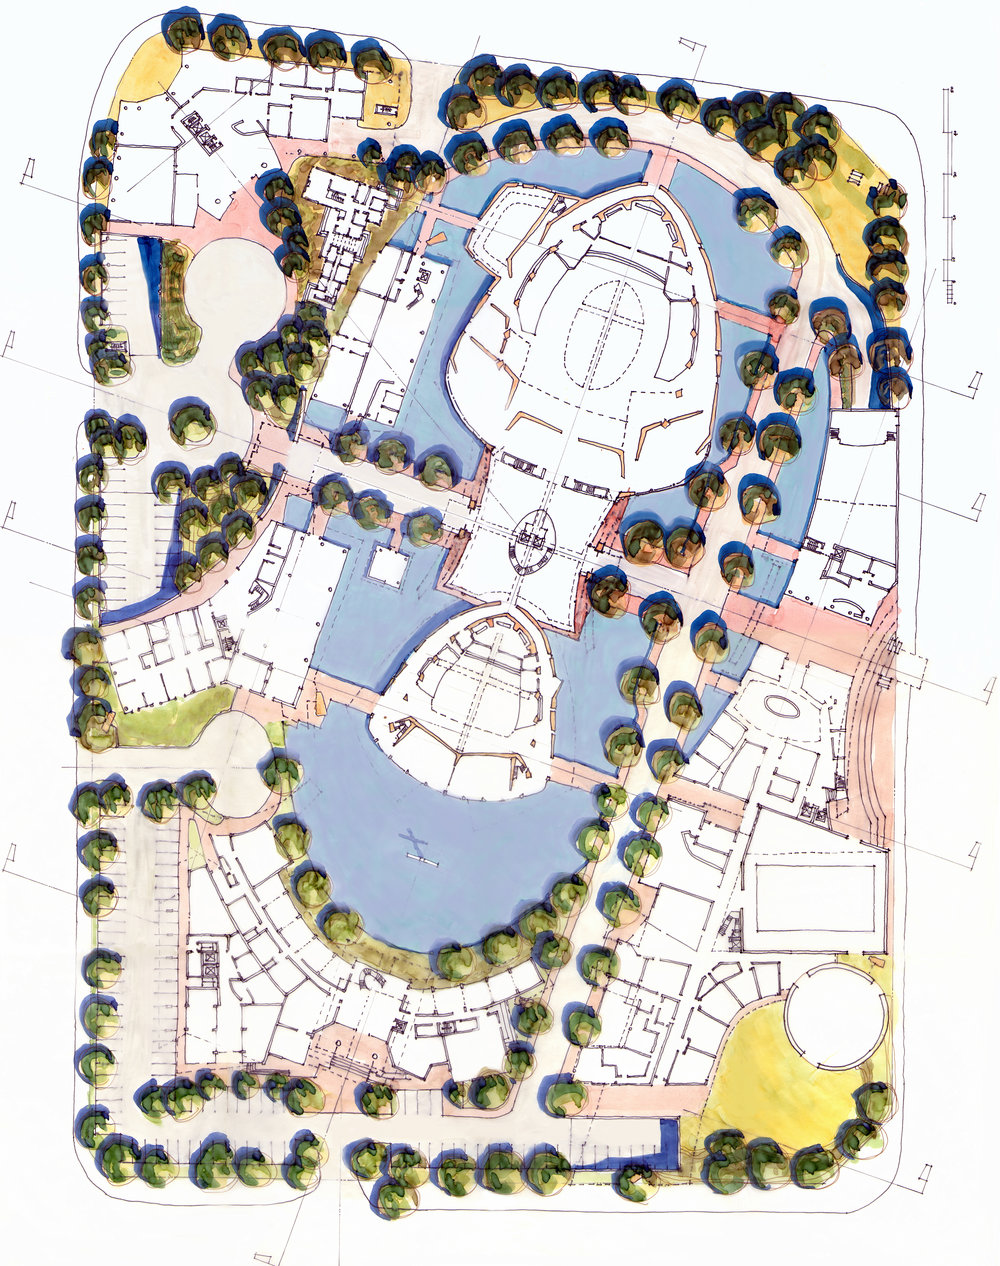 2 ground plan composit colour ba.jpg